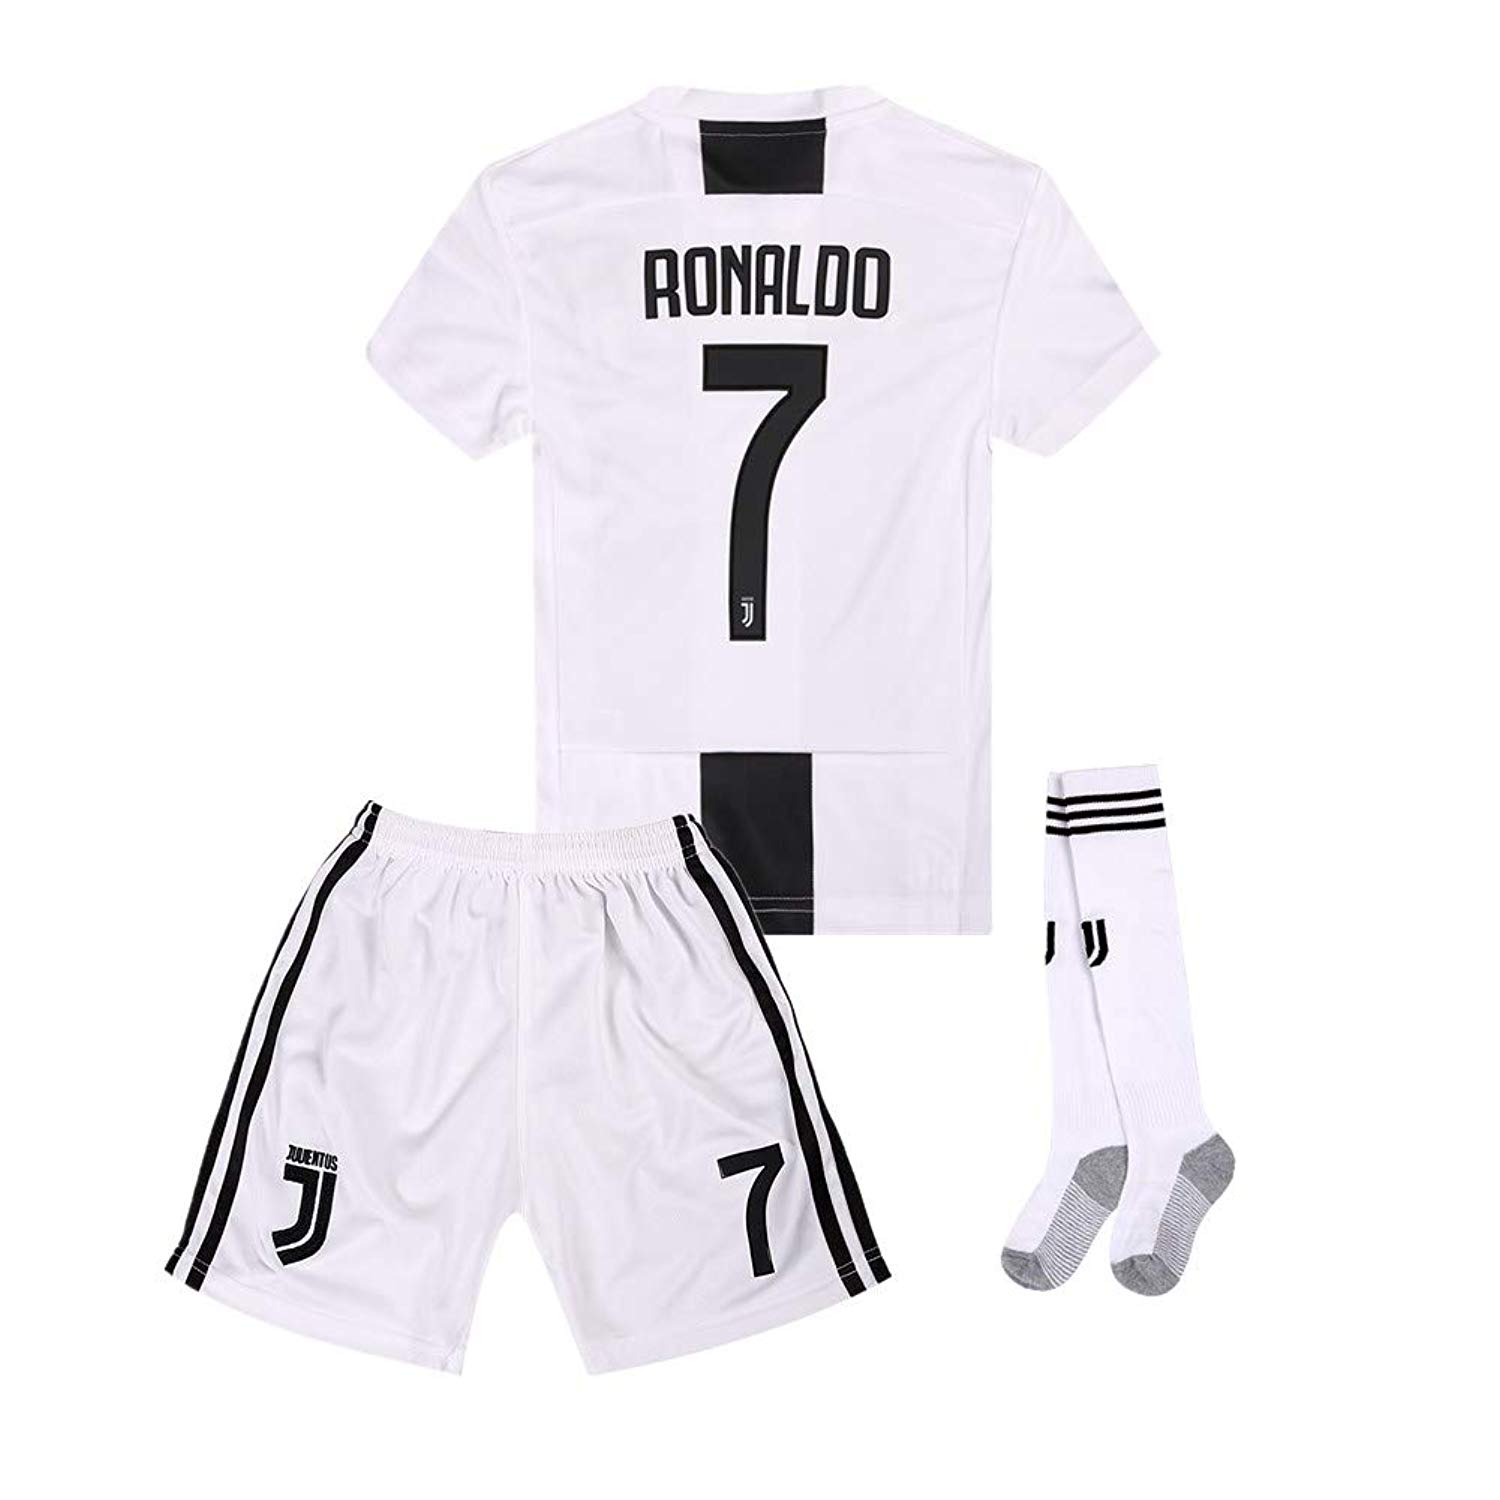 low priced c9bd7 2aeaf Cheap Ronaldo Shorts, find Ronaldo Shorts deals on line at ...